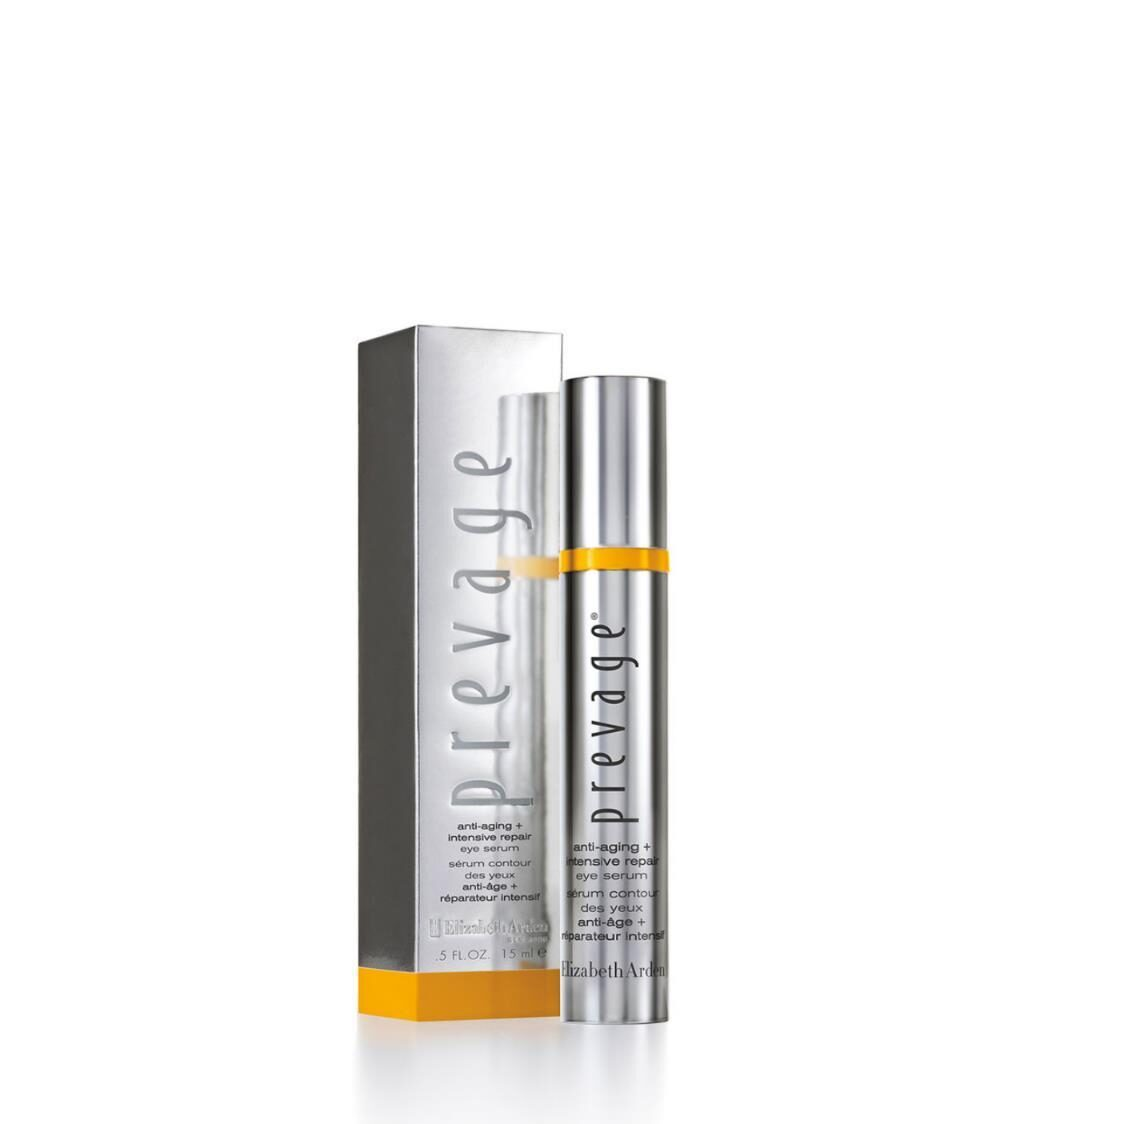 PREVAGE Anti-aging  Intensive Repair Eye Serum 15ml